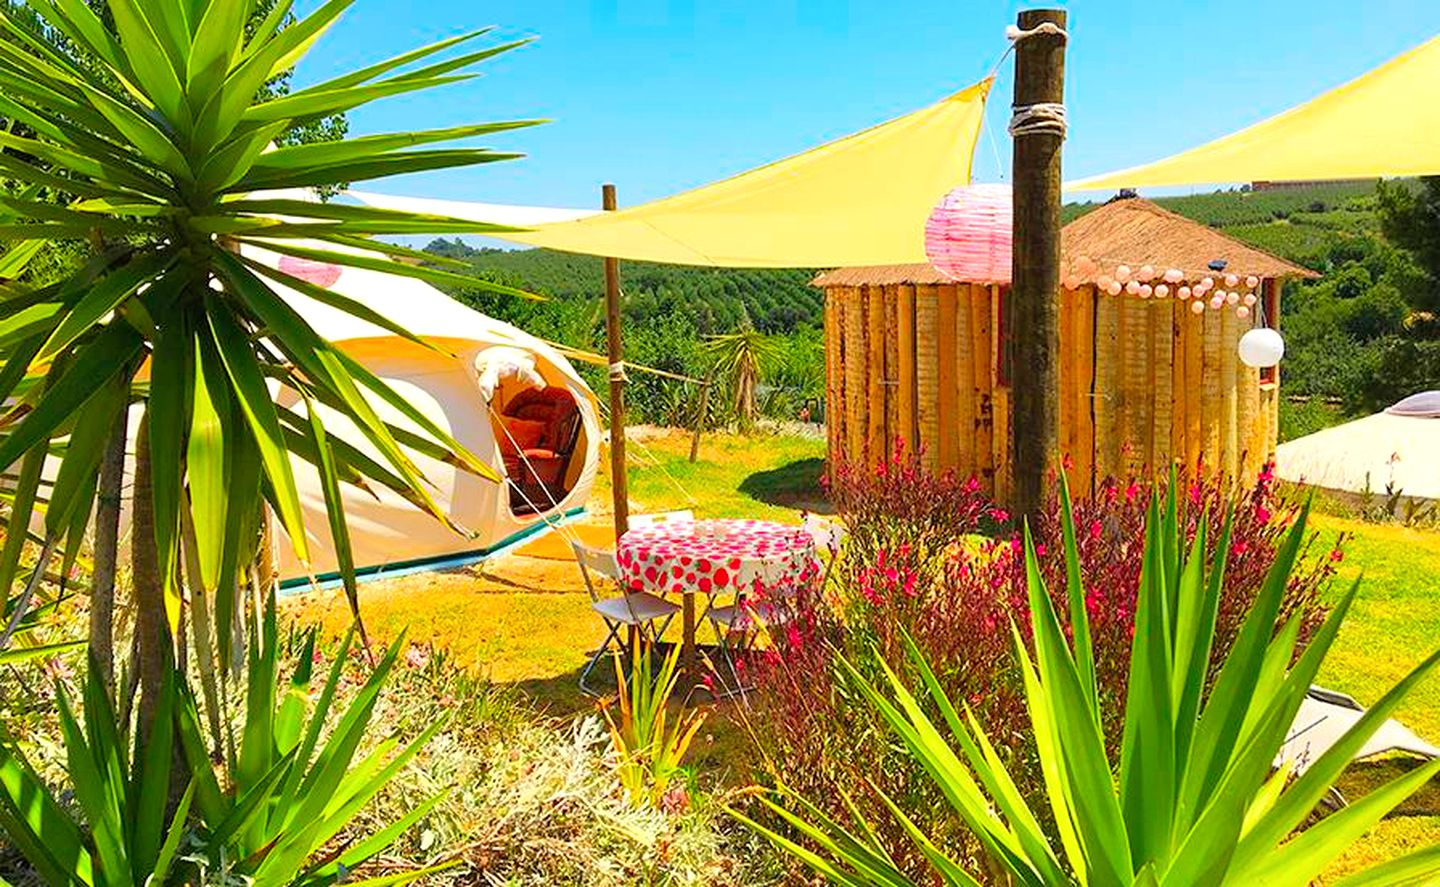 Bell Tent for a Glamping Getaway on the Silver Coast (Vimeiro, Lisbon District, Portugal)